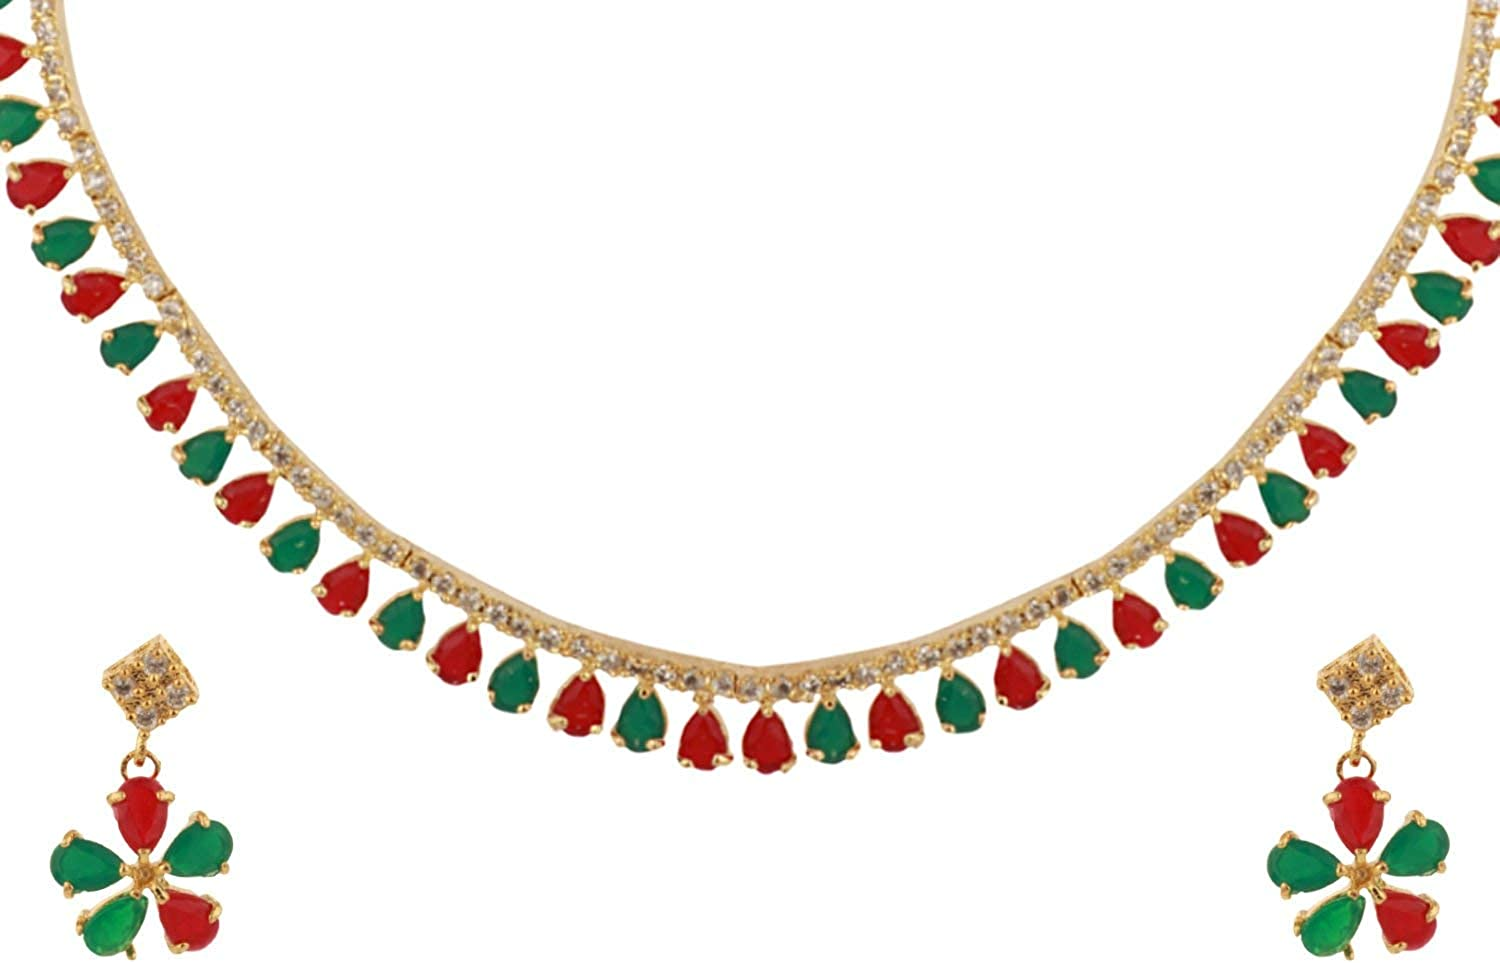 Efulgenz Bridal Crystal Cubic Zirconia Red Green Collar Necklace Earrings Jewelry Set for Women Girls Bride Bridesmaids…